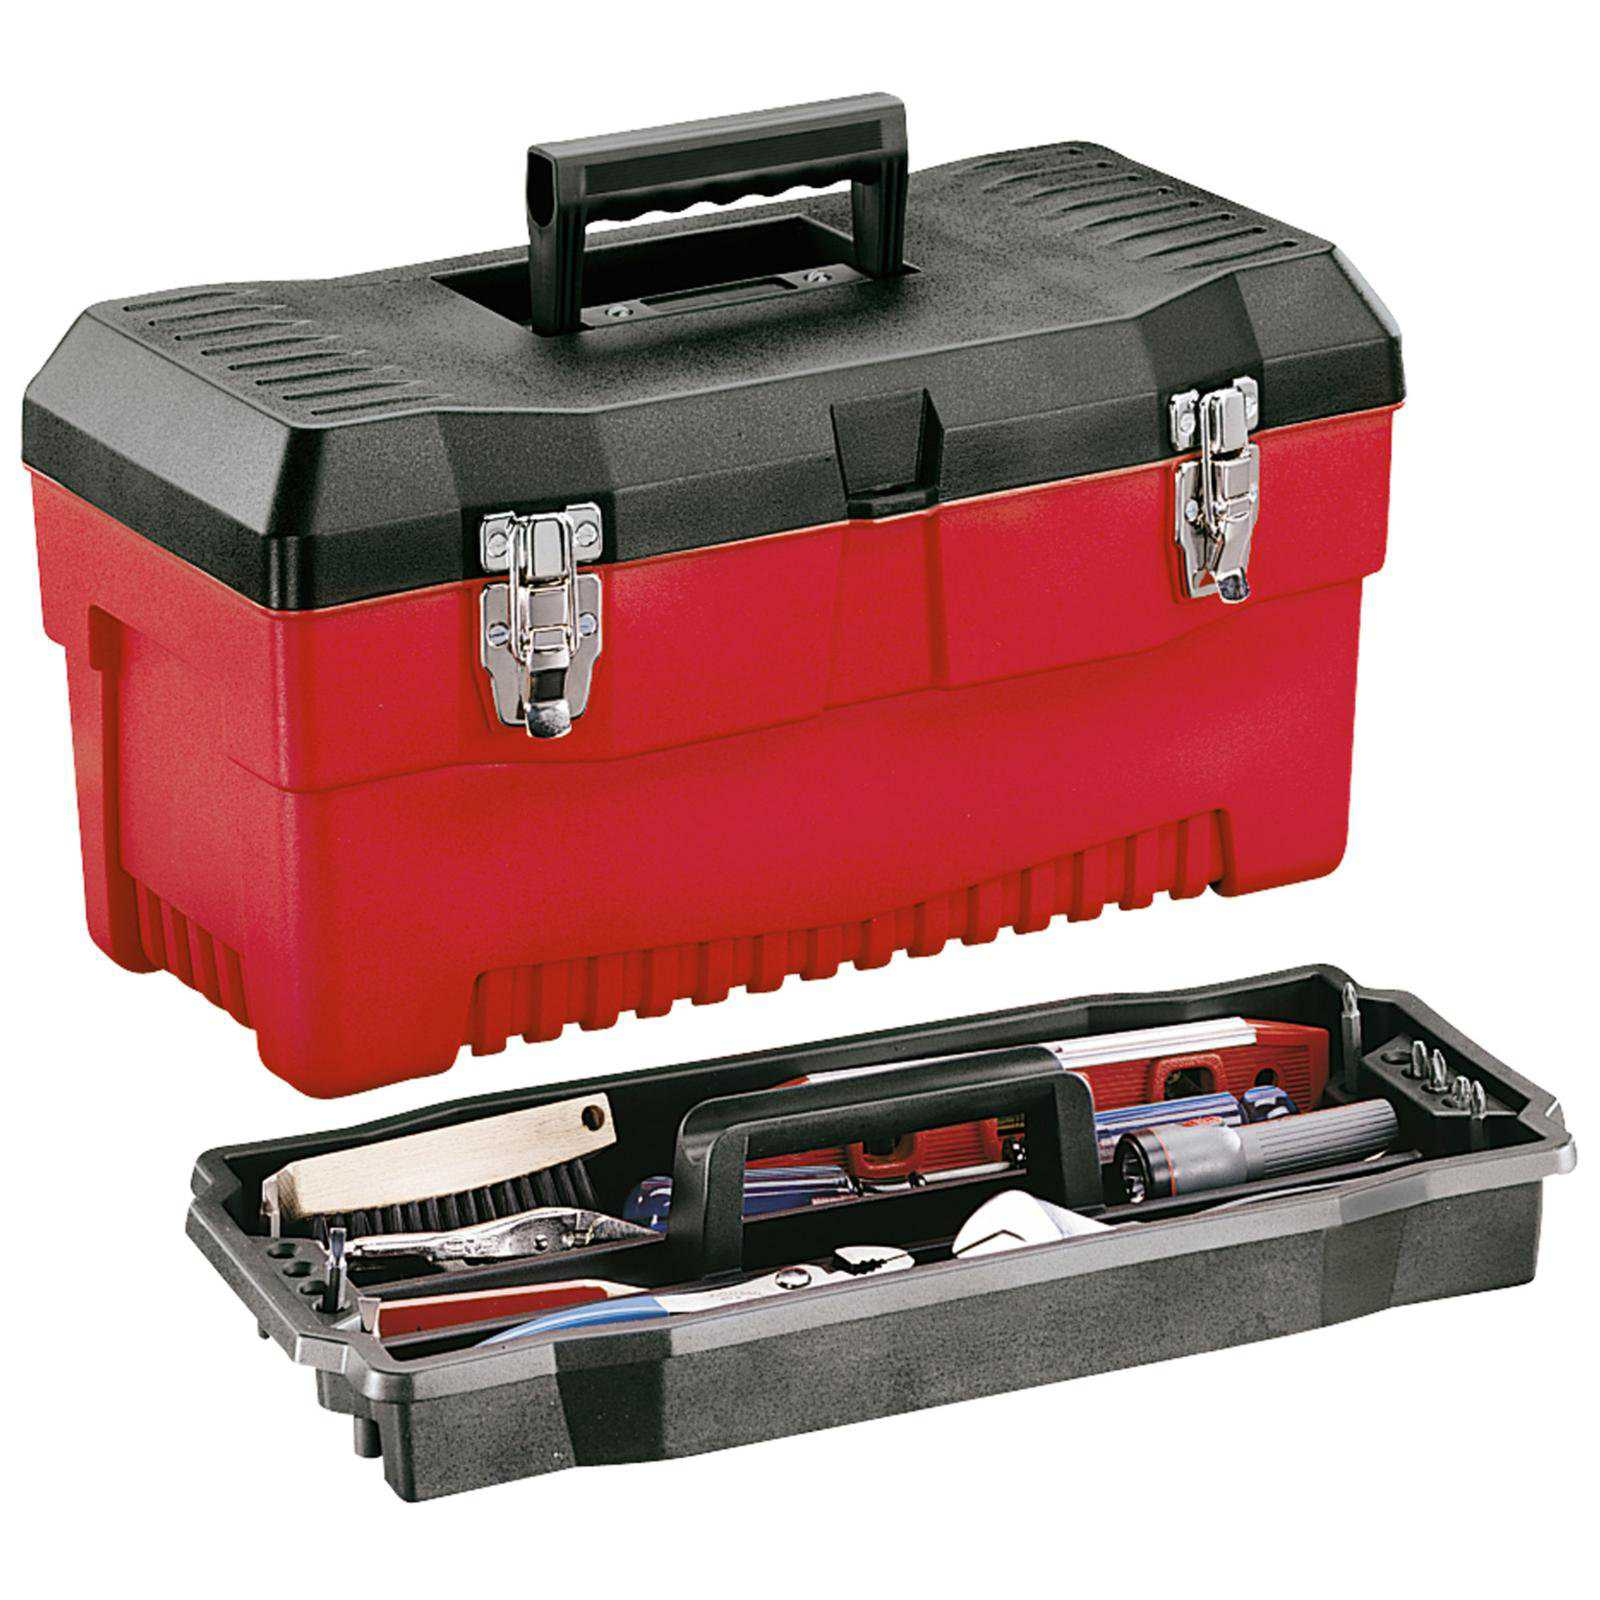 Stack-On 19' Professional Tool Box